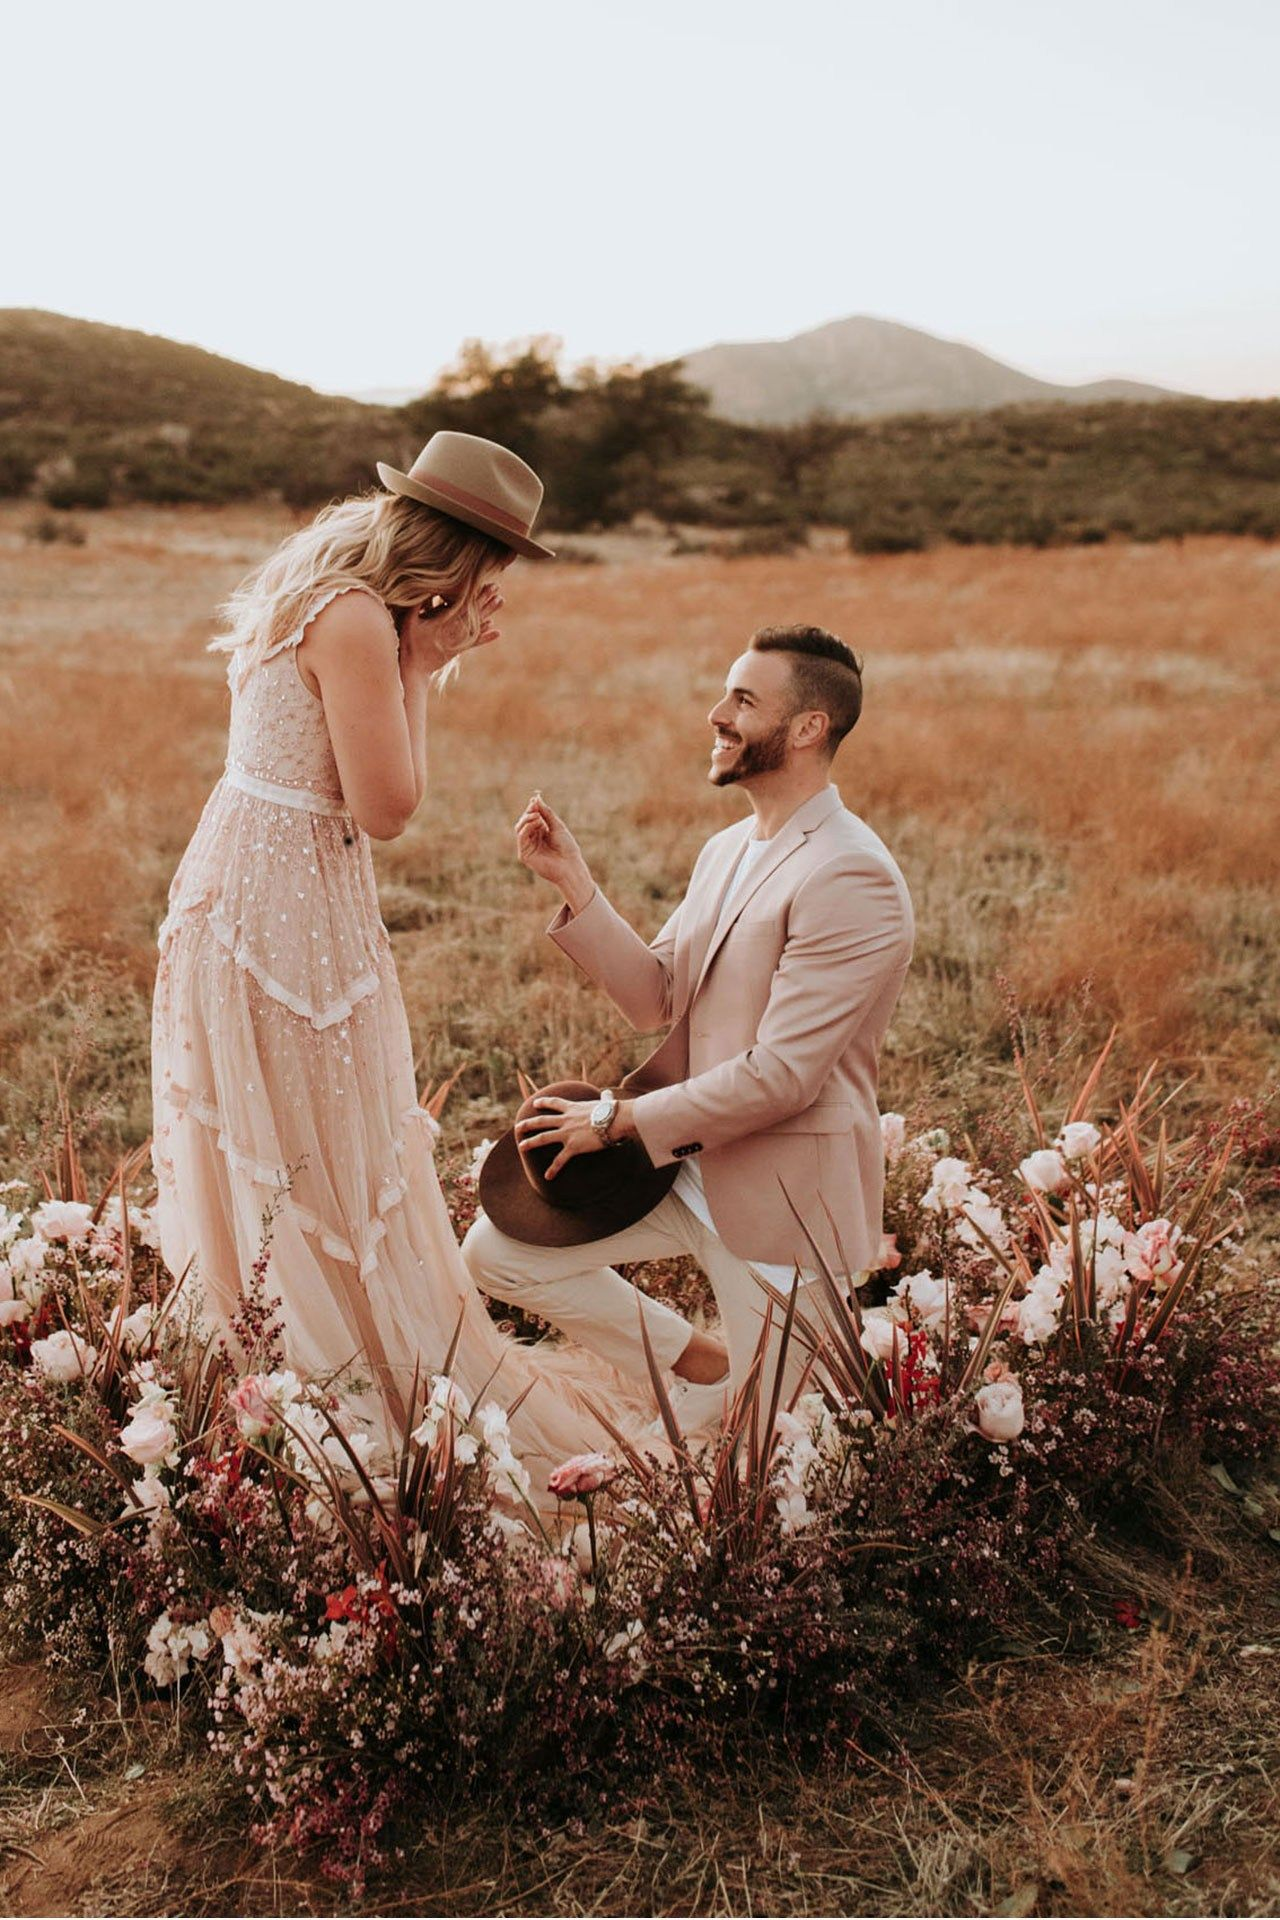 Unique Proposal Ideas And How To Propose In An Unexpected Way Bridesmagazine Co Uk